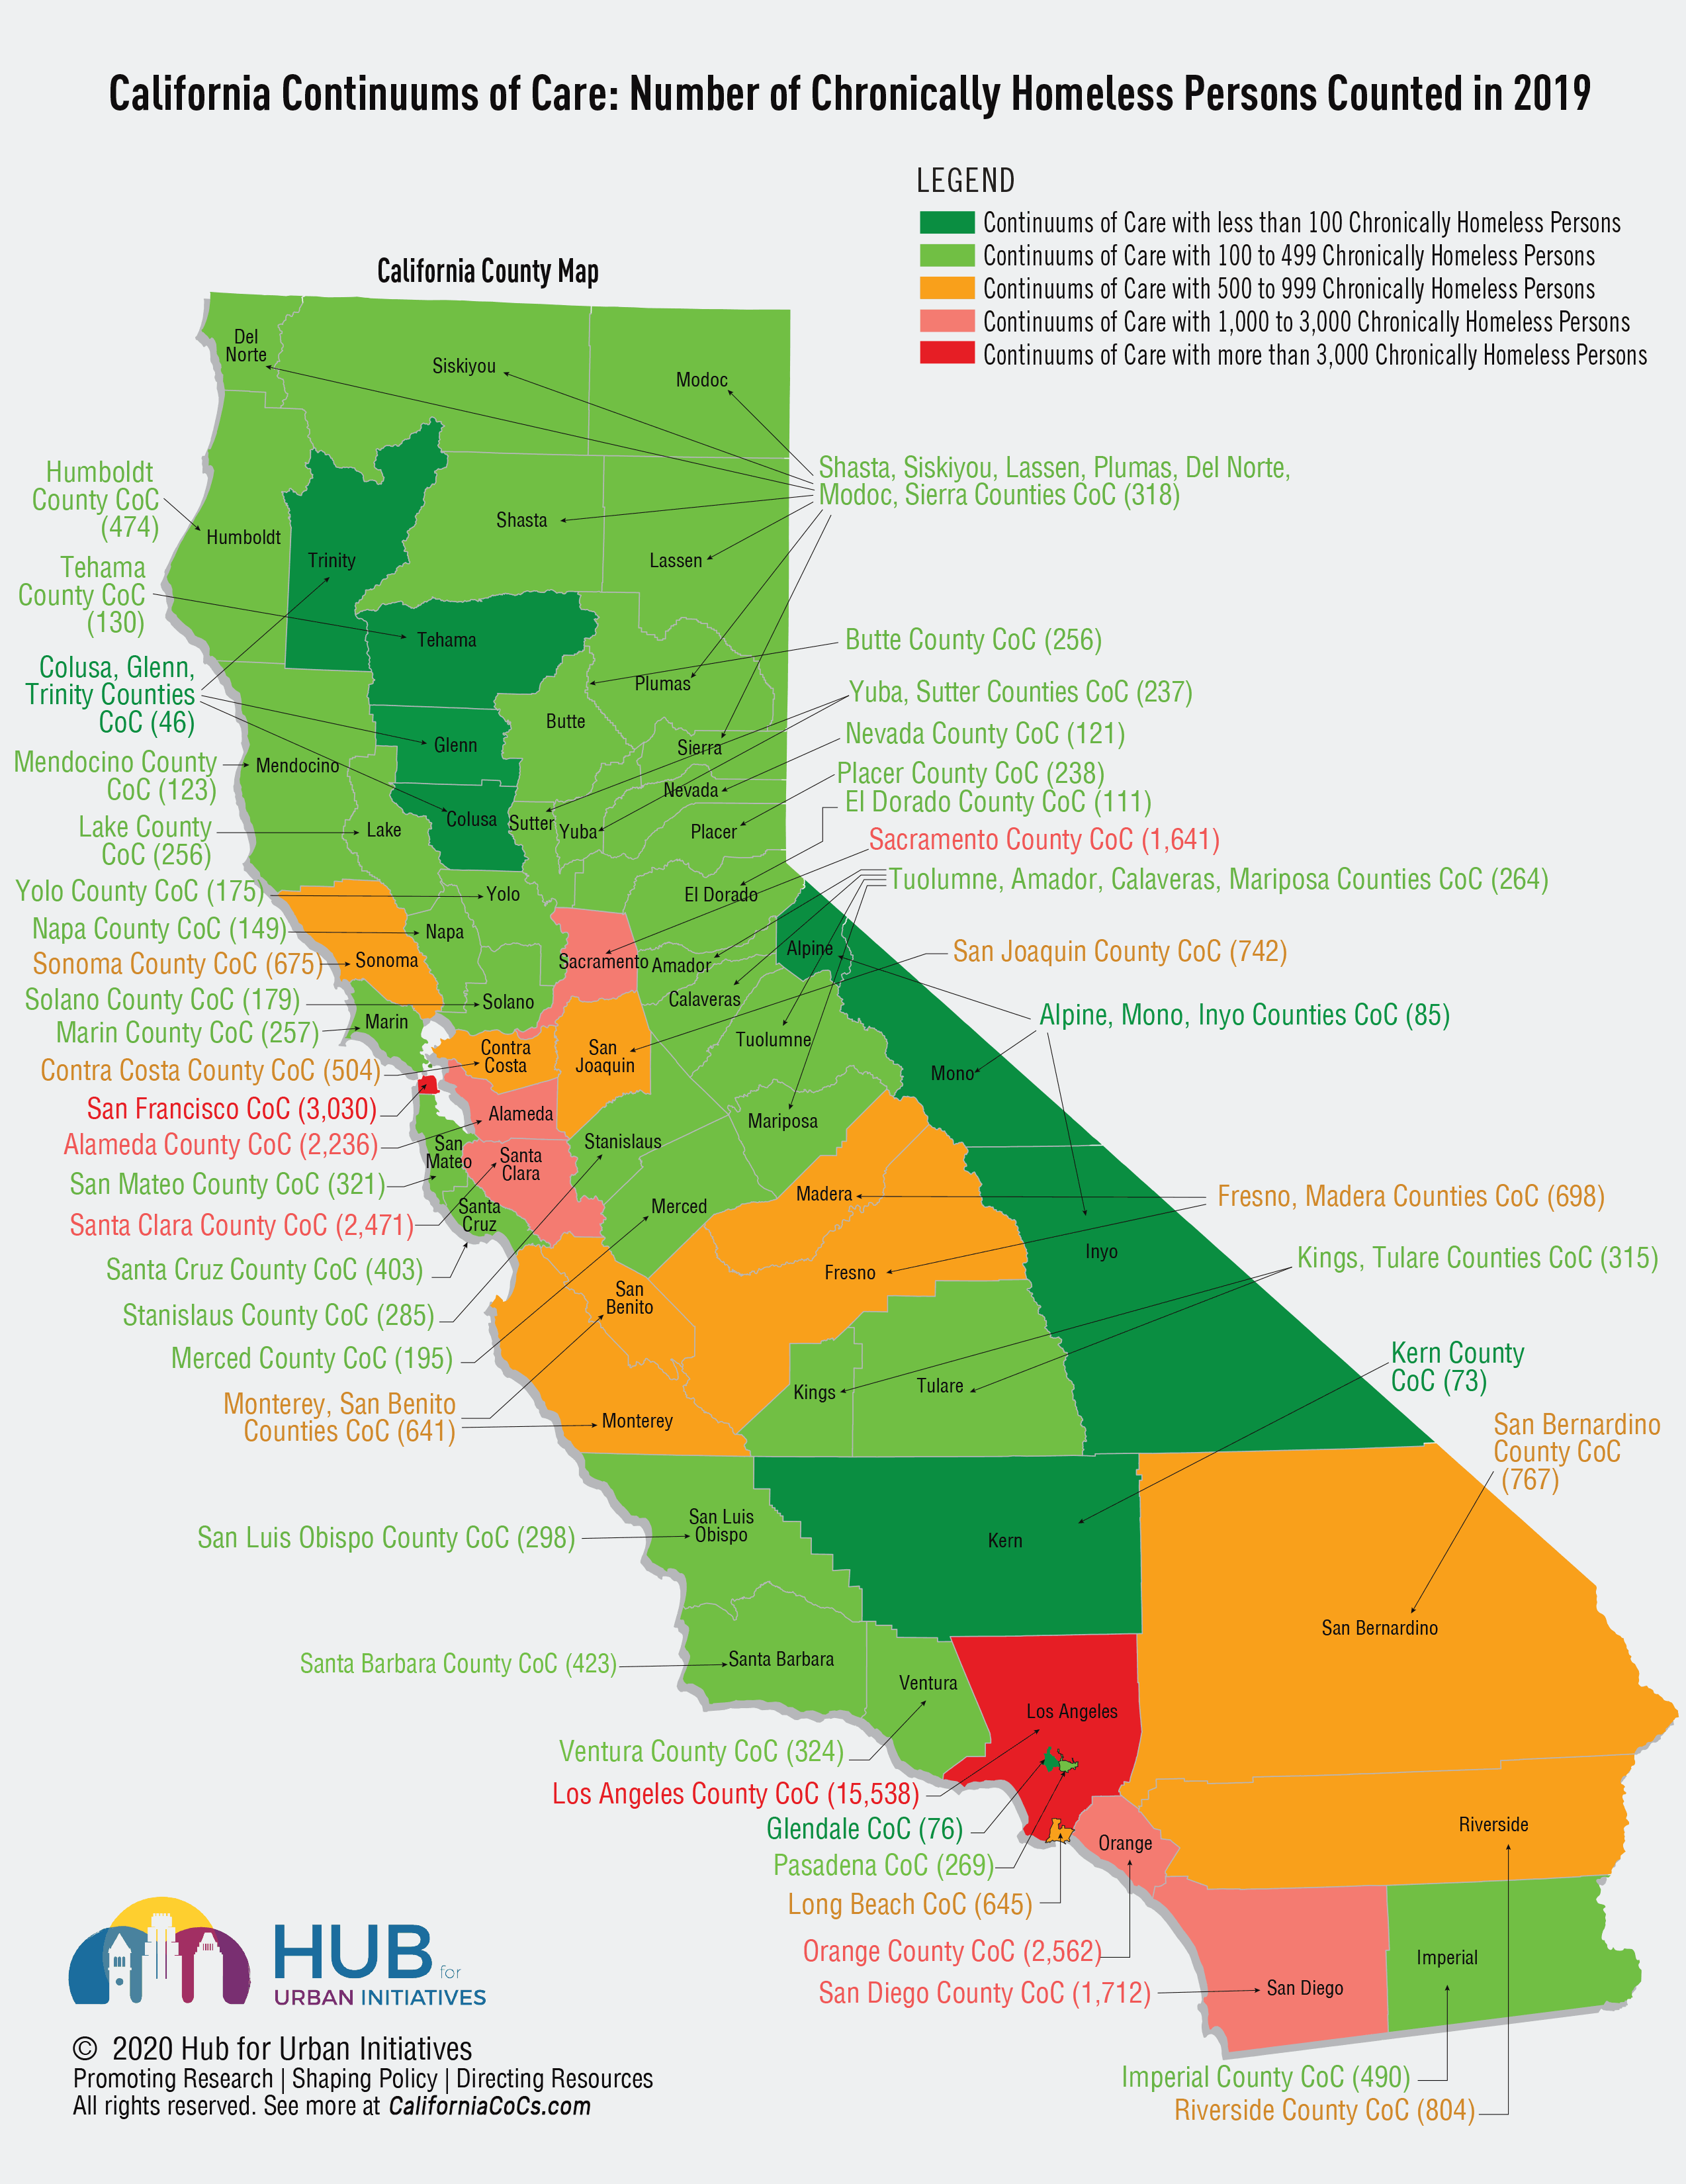 Map of California showing total number of persons counted as chronically homeless in 2019 in each of the 44 Continuums of Care